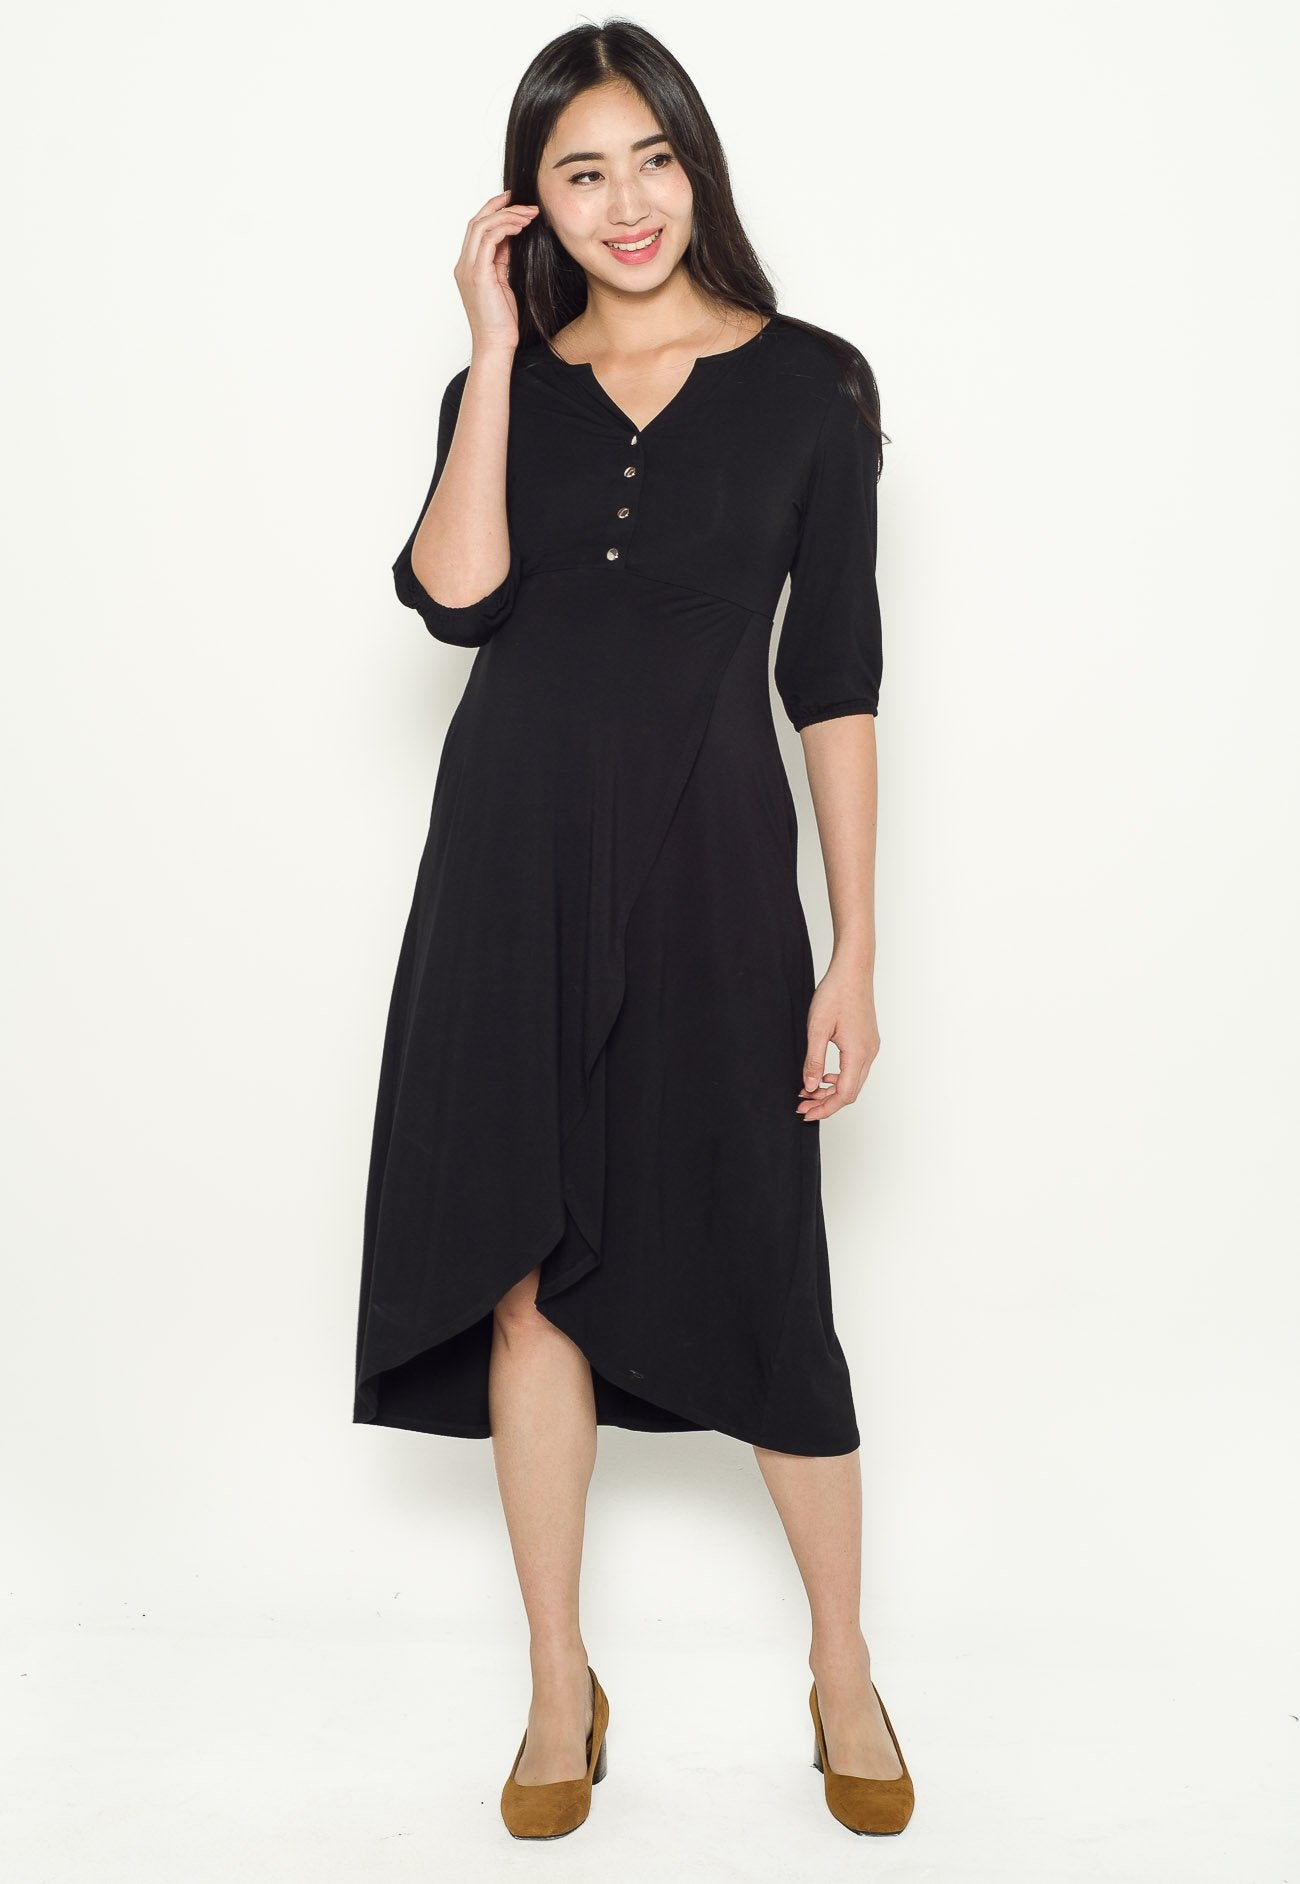 Natalia Wrapped Skirt Nursing Dress  by Jump Eat Cry - Maternity and nursing wear